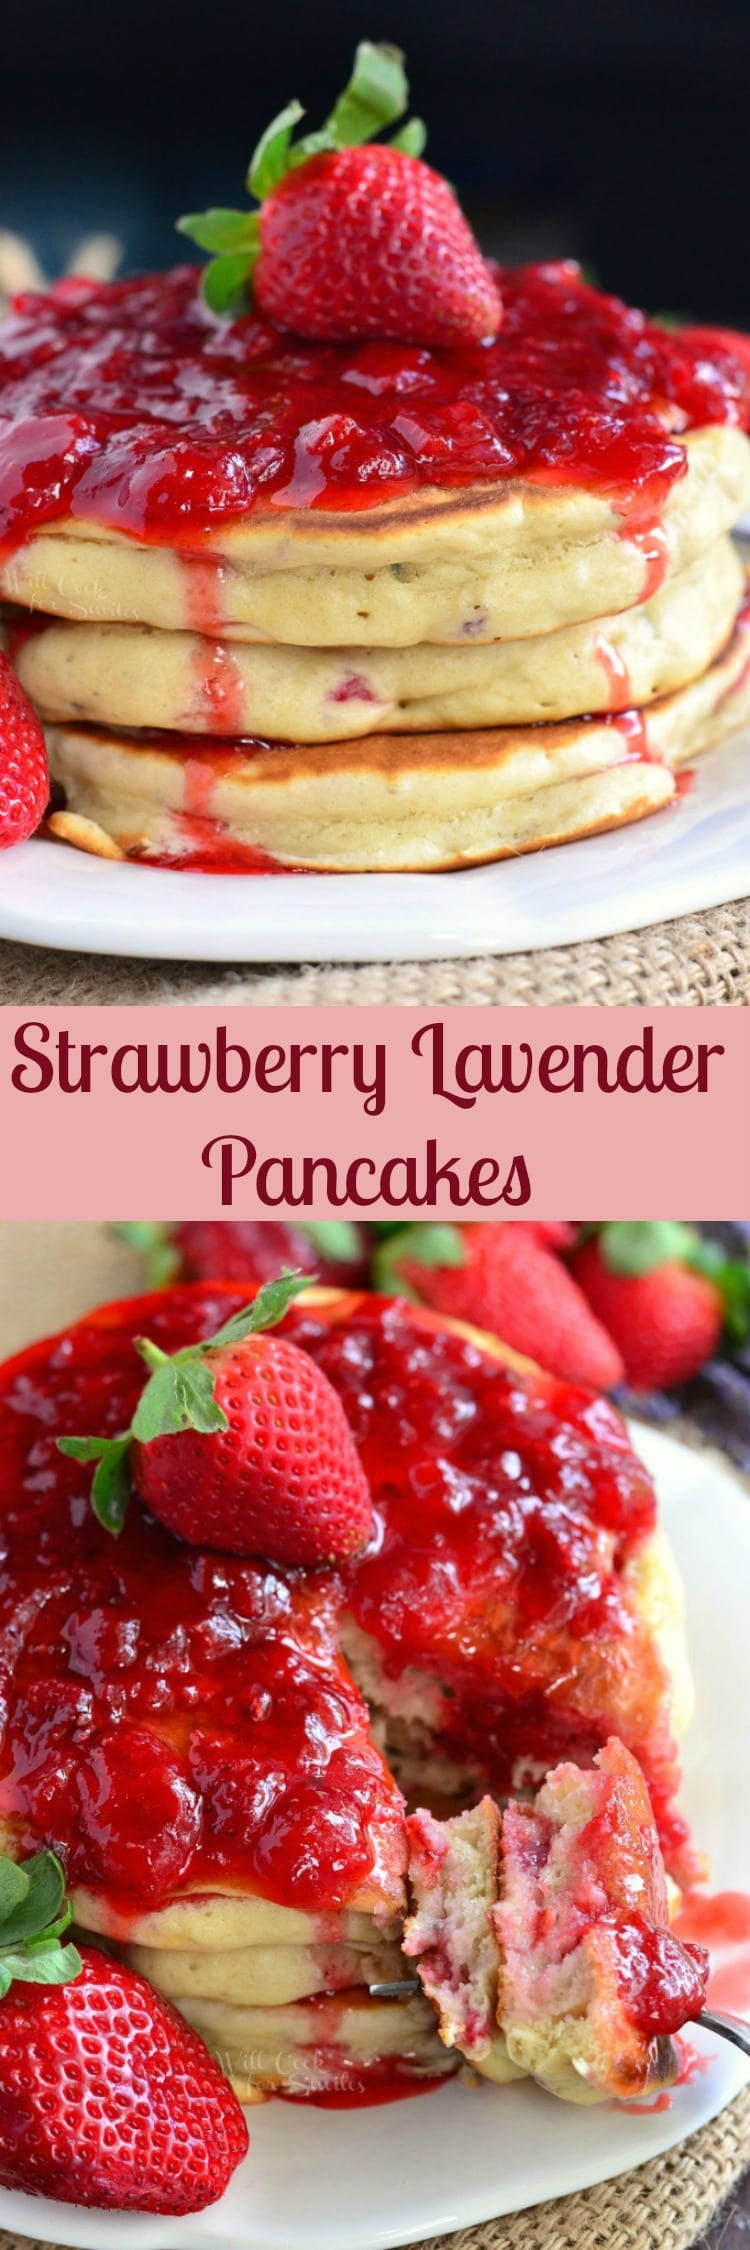 Strawberry Lavender Pancakes. These pancakes are made with fresh strawberries and lavender inside and topped with a freshly made strawberry lavender topping.